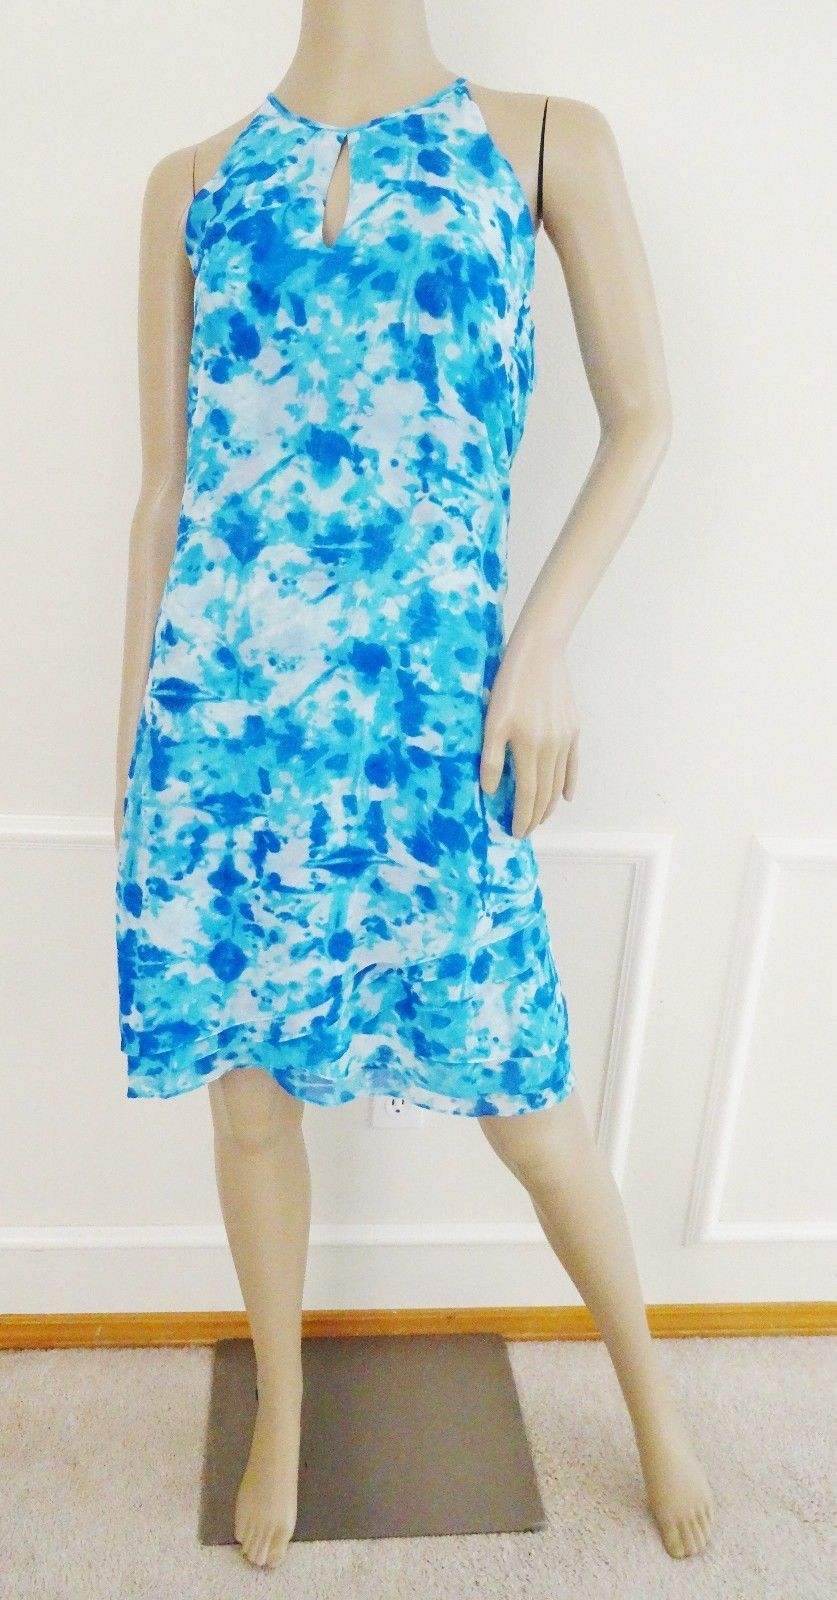 Primary image for Nwt Calvin Klein Keyhole Halter Chiffon Flare Tiered Dress Sz 12 Blue Print $134